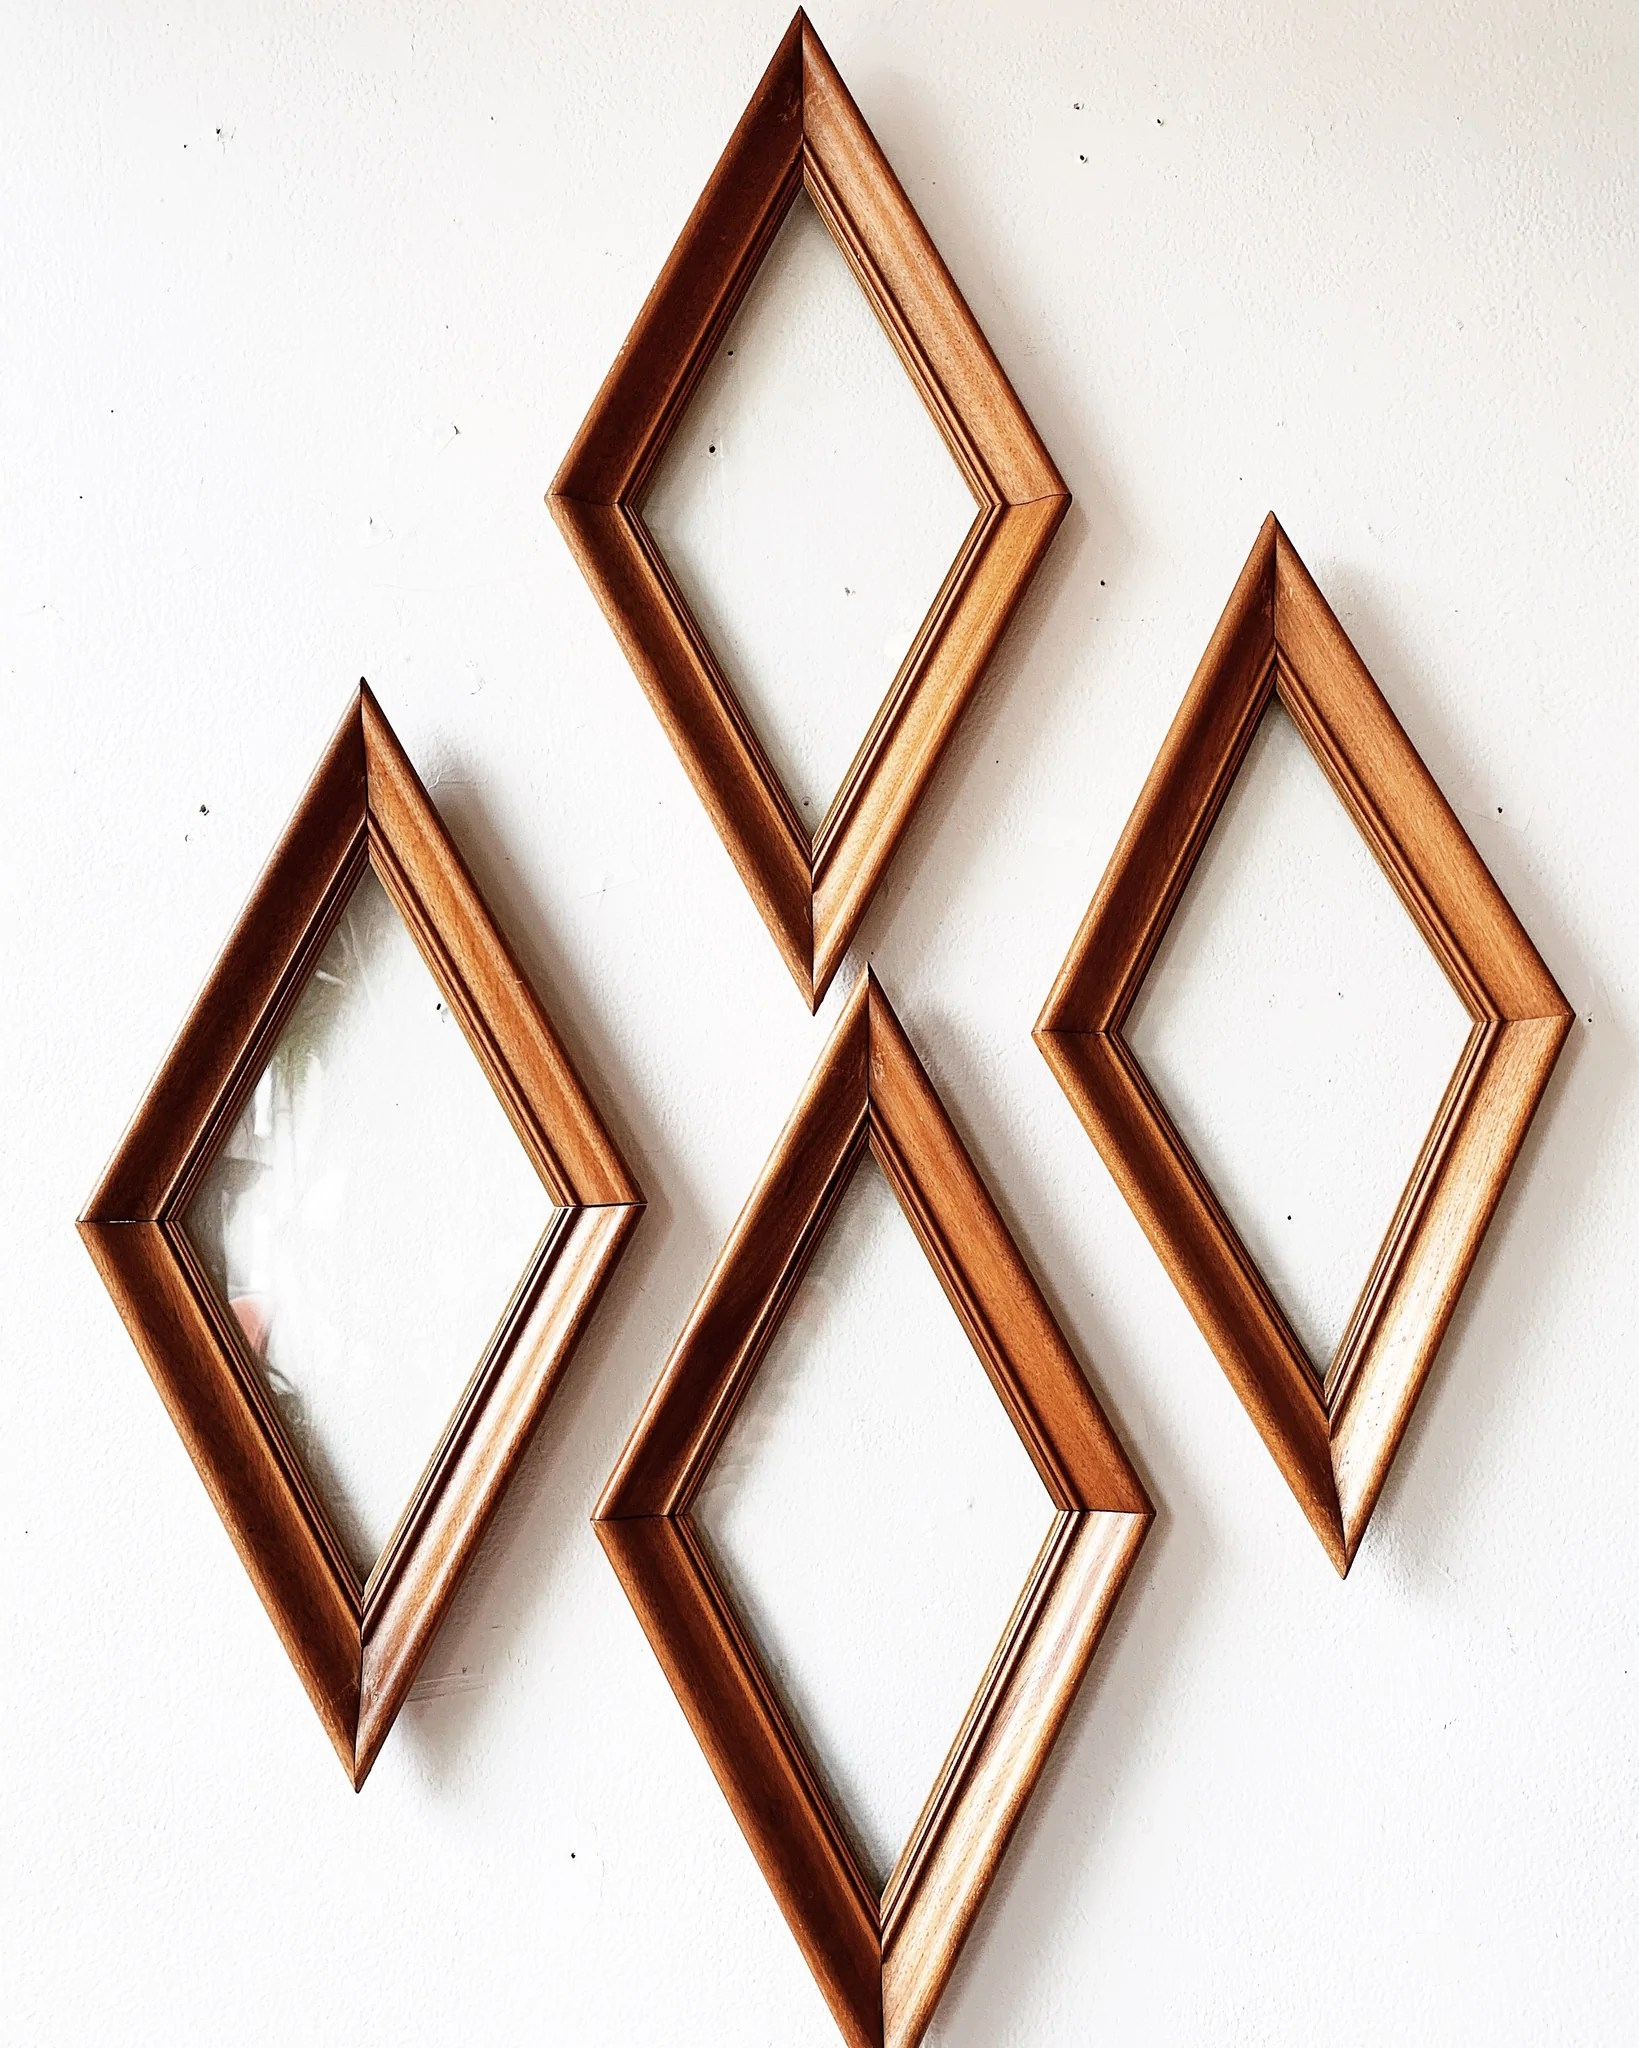 Diamond Shaped Picture Frame : diamond, shaped, picture, frame, Vintage, Diamond, Shaped, Frames, Glass, Maven, Collective